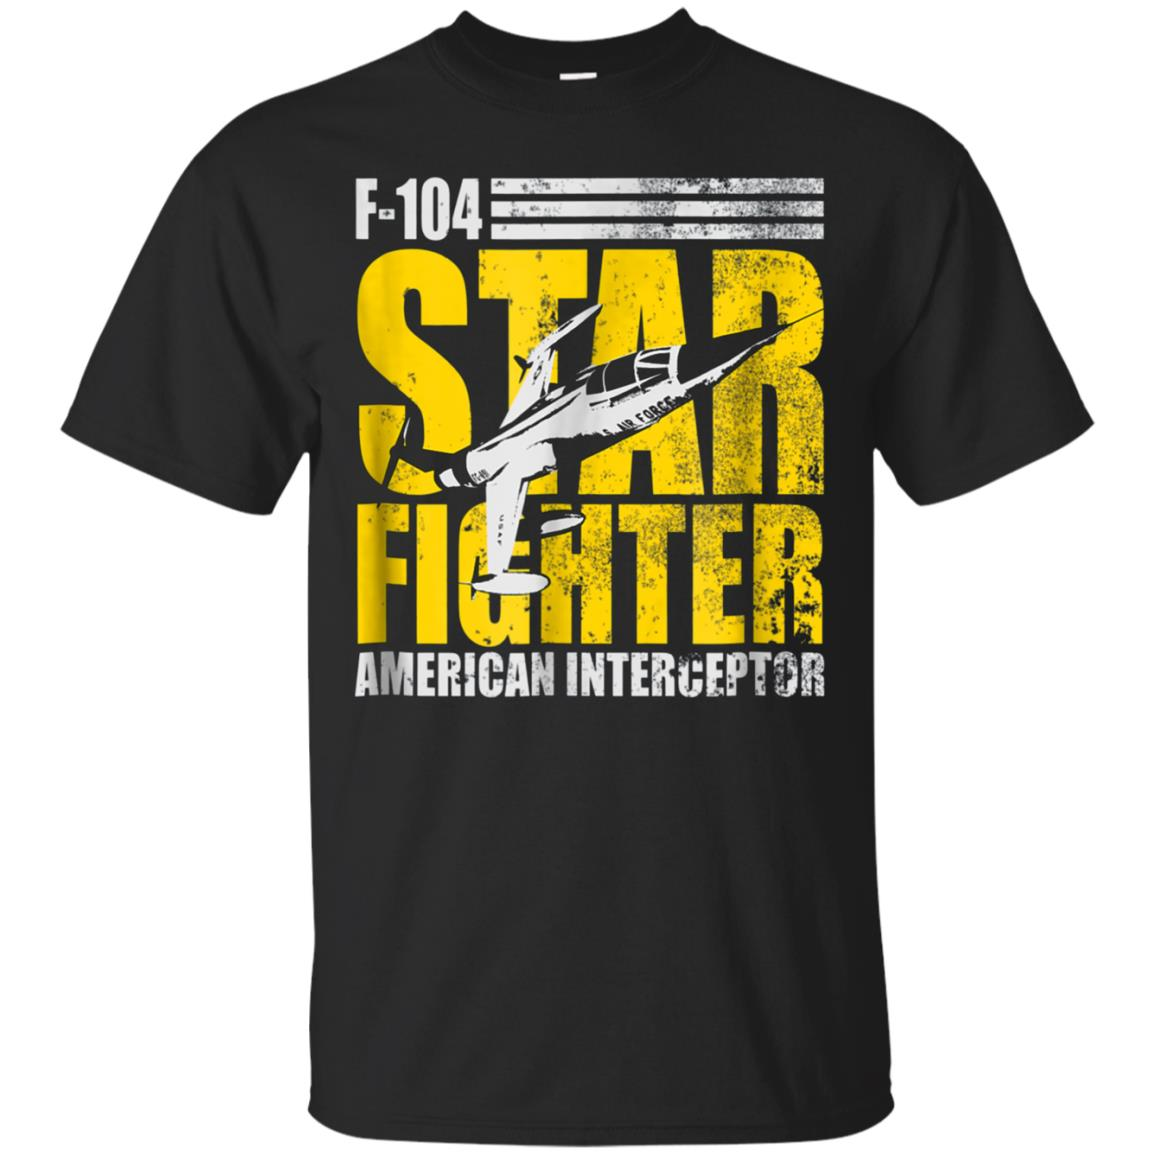 Air Force Fighter T shirt - F-104 Starfighter